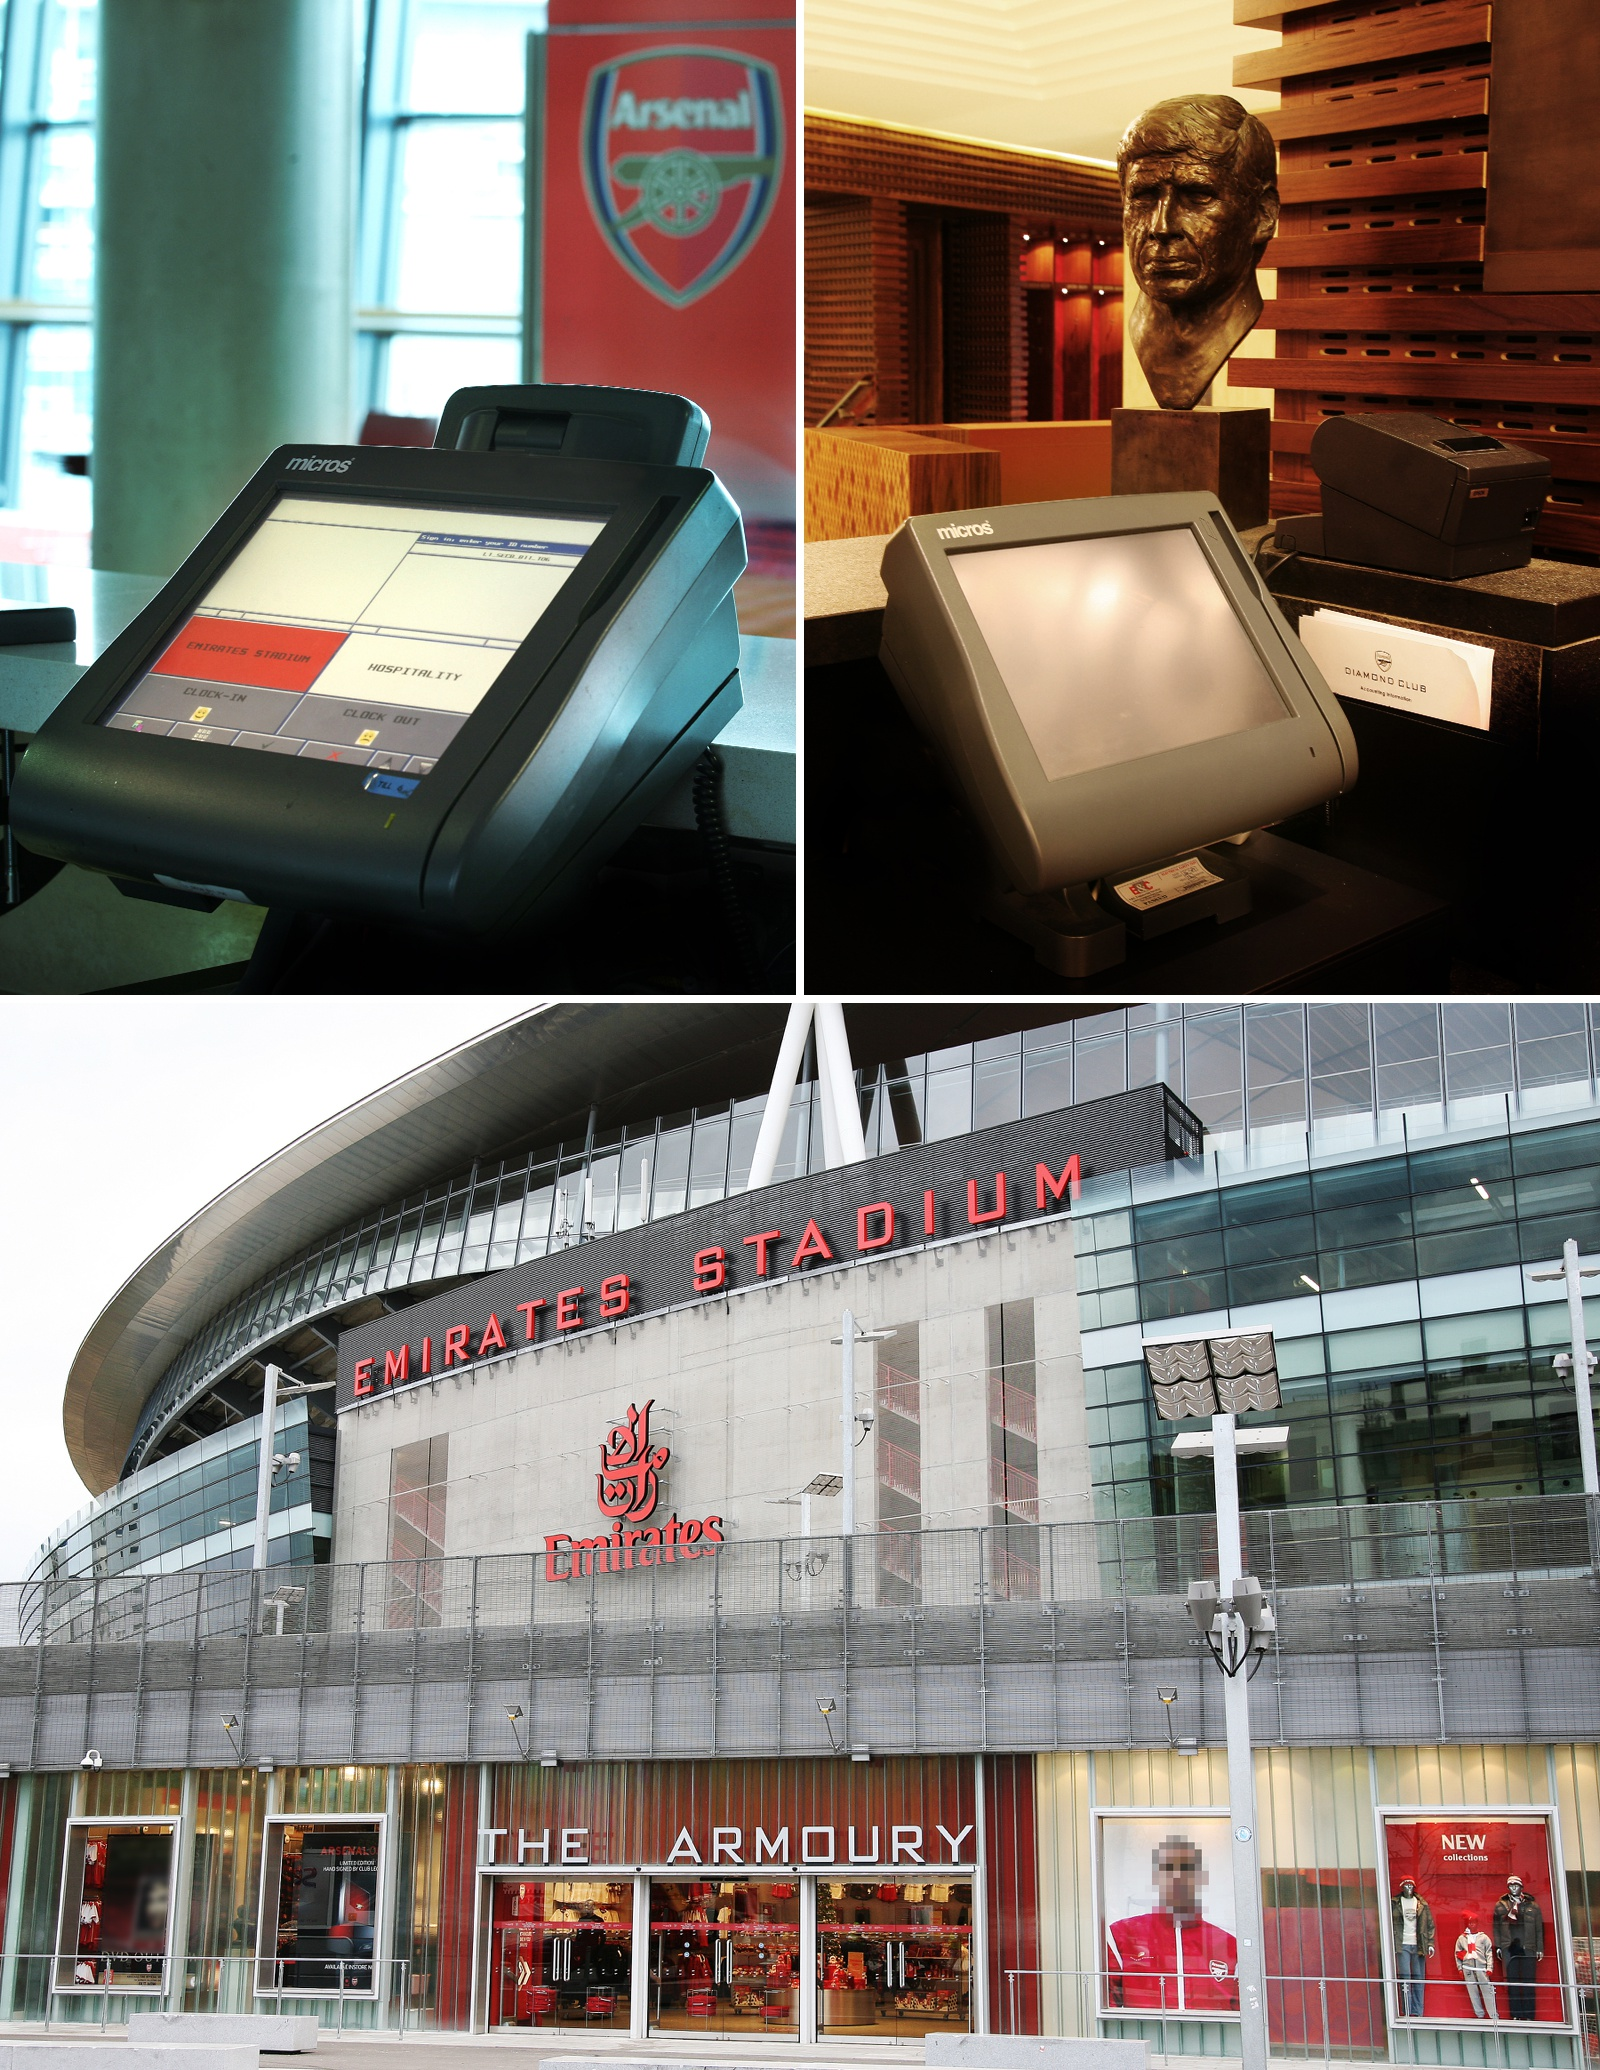 Interior photography at Arsenal The Emirates